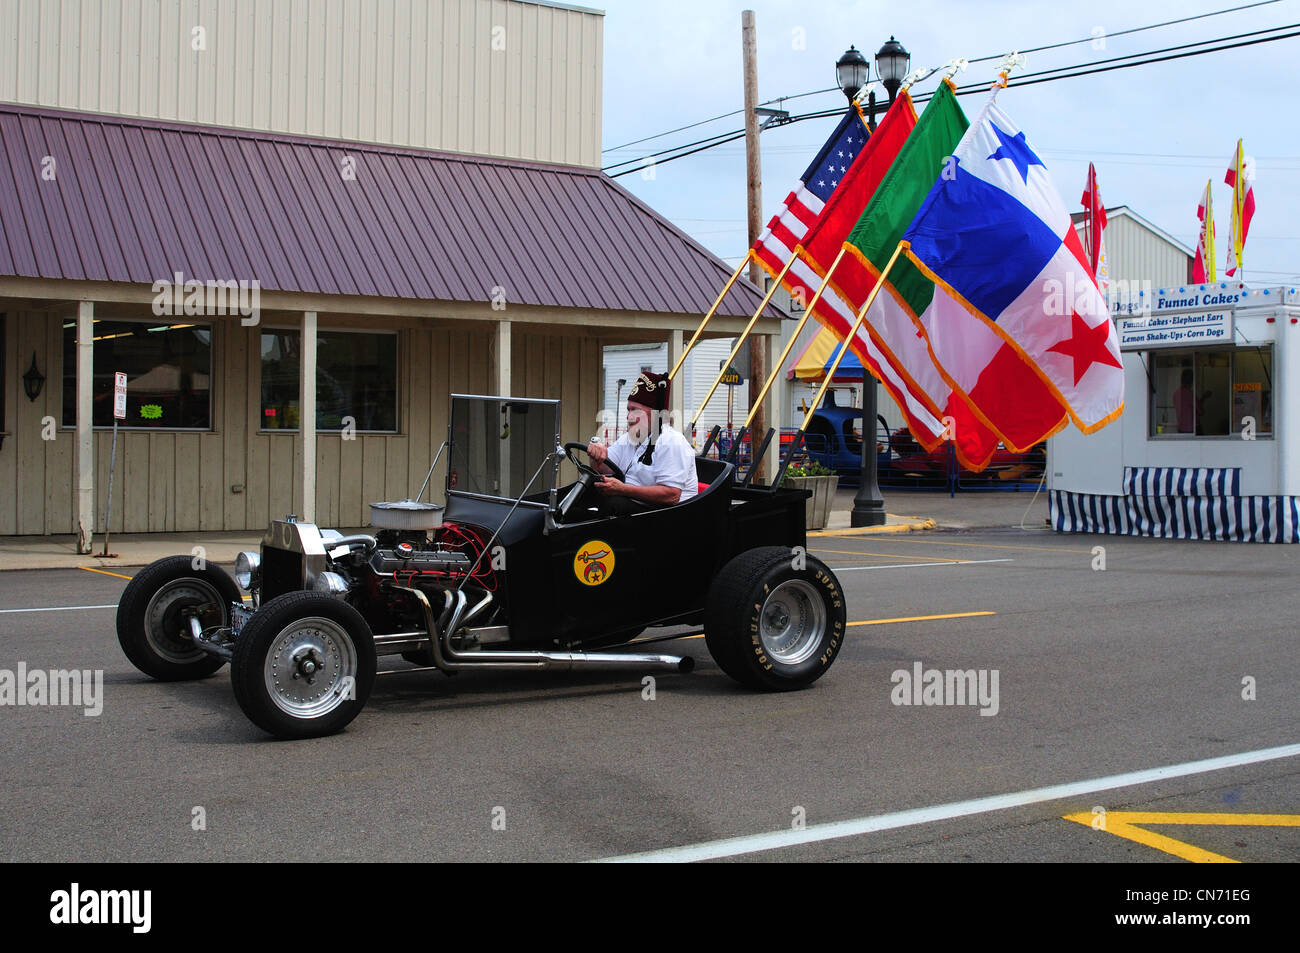 A Shriner driving a t-bucket roadster in a summer parade - Stock Image